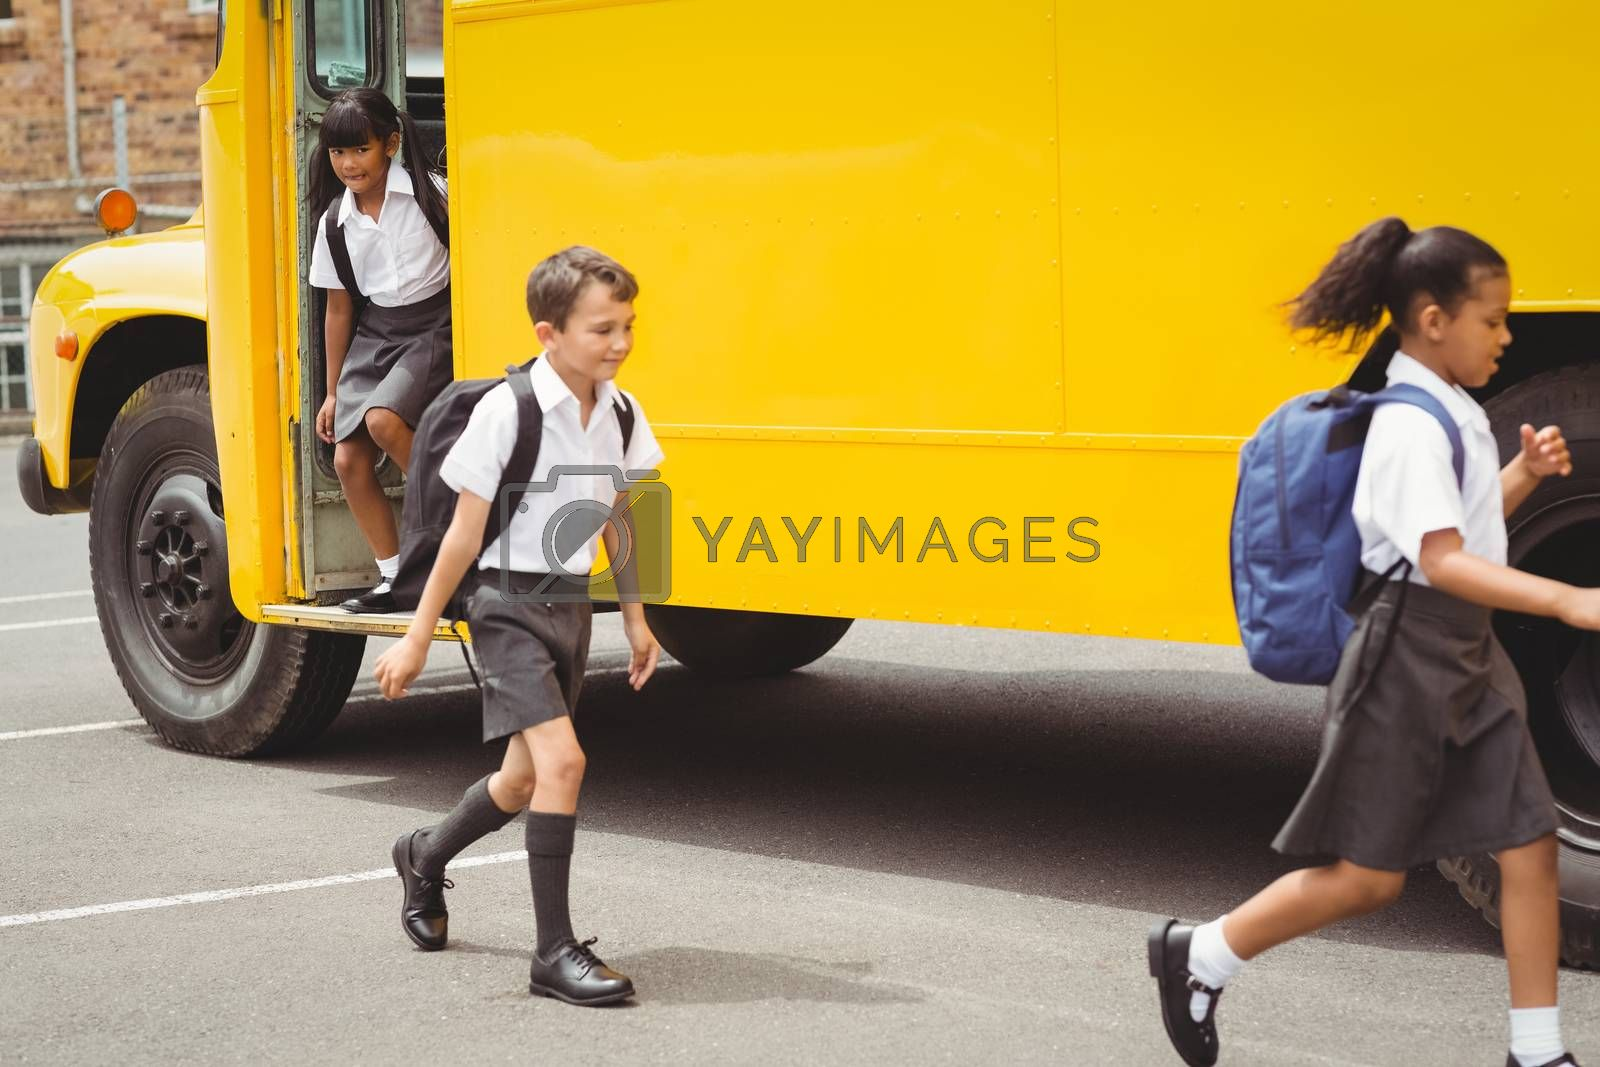 Cute schoolchildren getting off the school bus by Wavebreakmedia